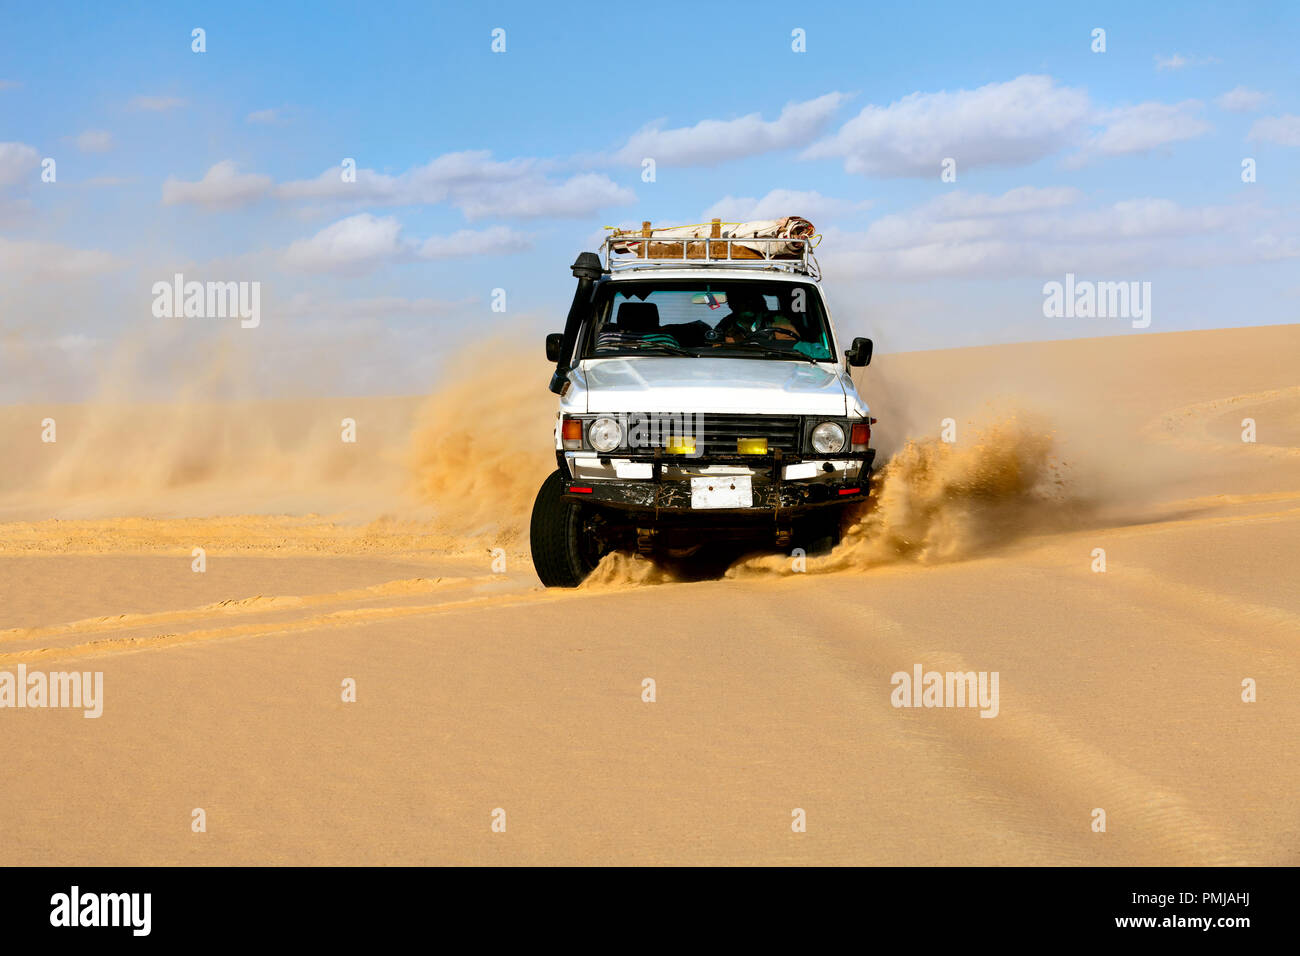 Off-road vehicles driving in Sahara sand desert - Stock Image